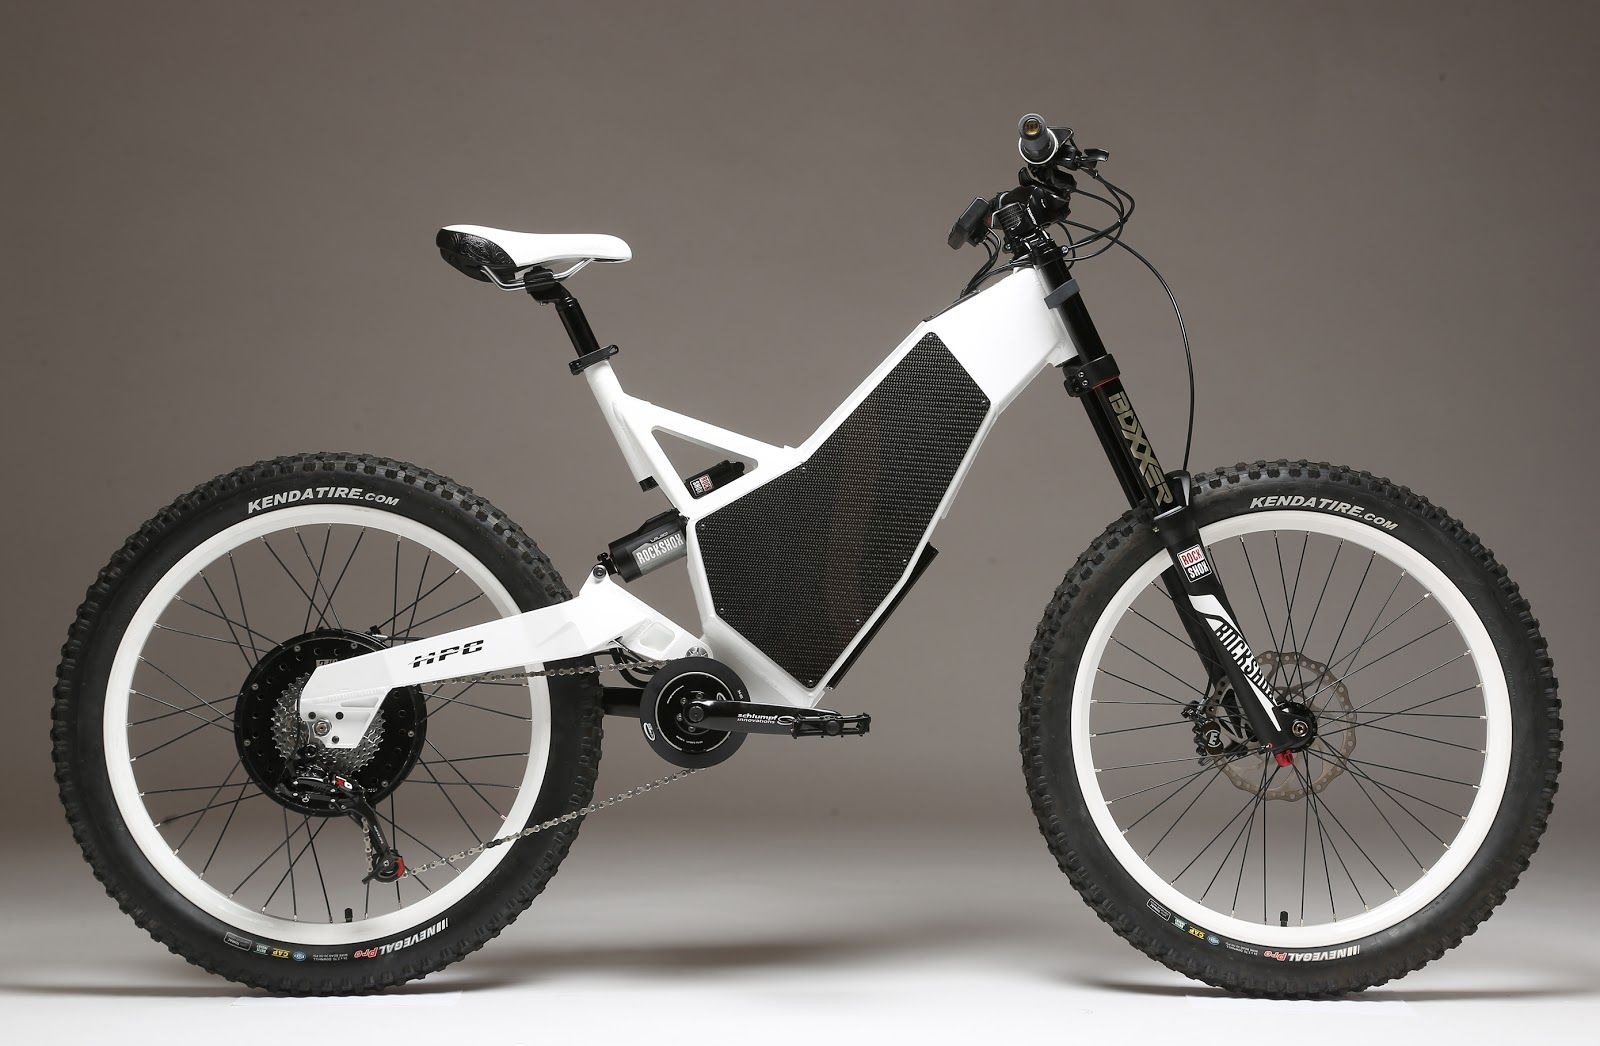 Top 10 Fastest Production Electric Bikes Electricbike Com Electric Mountain Bike Bicycle Ebike